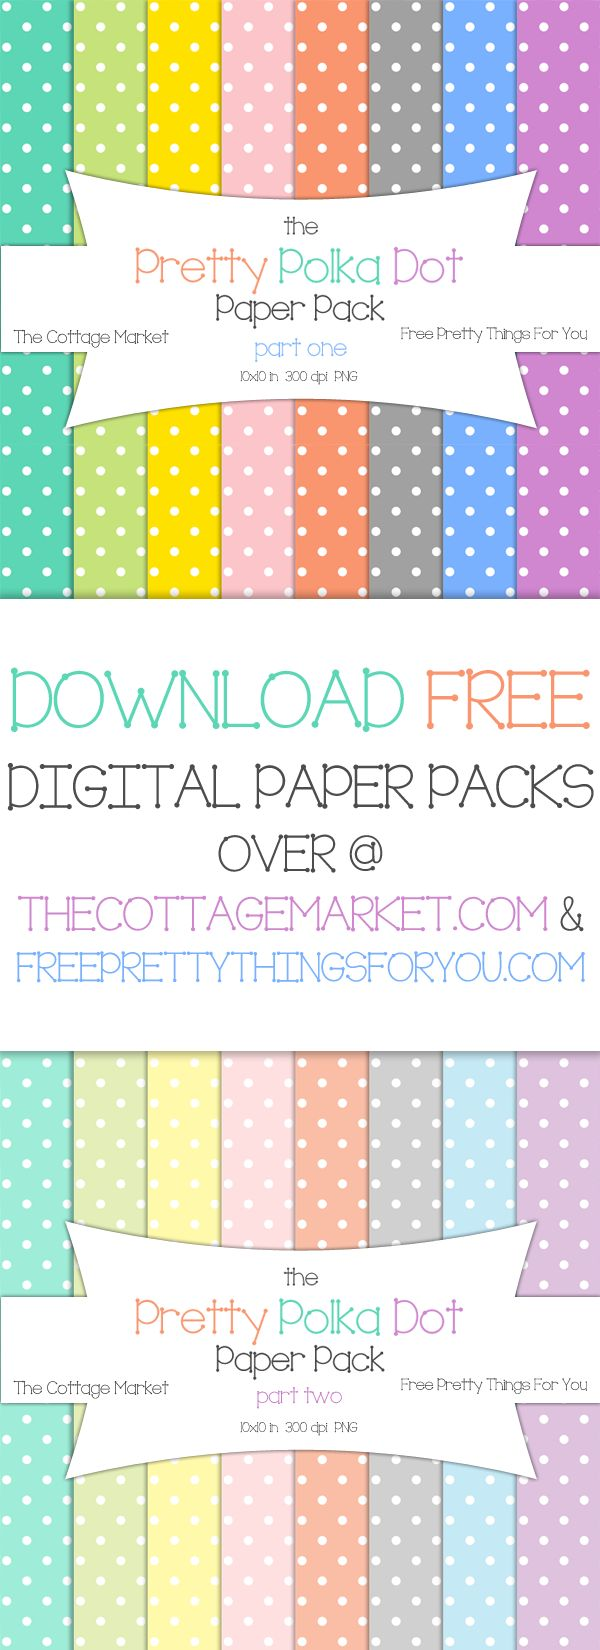 Polka Dot Digital Paper Pack  A Gift for YOU! Perfect for Scrapping and Crafting!  ENJOY!